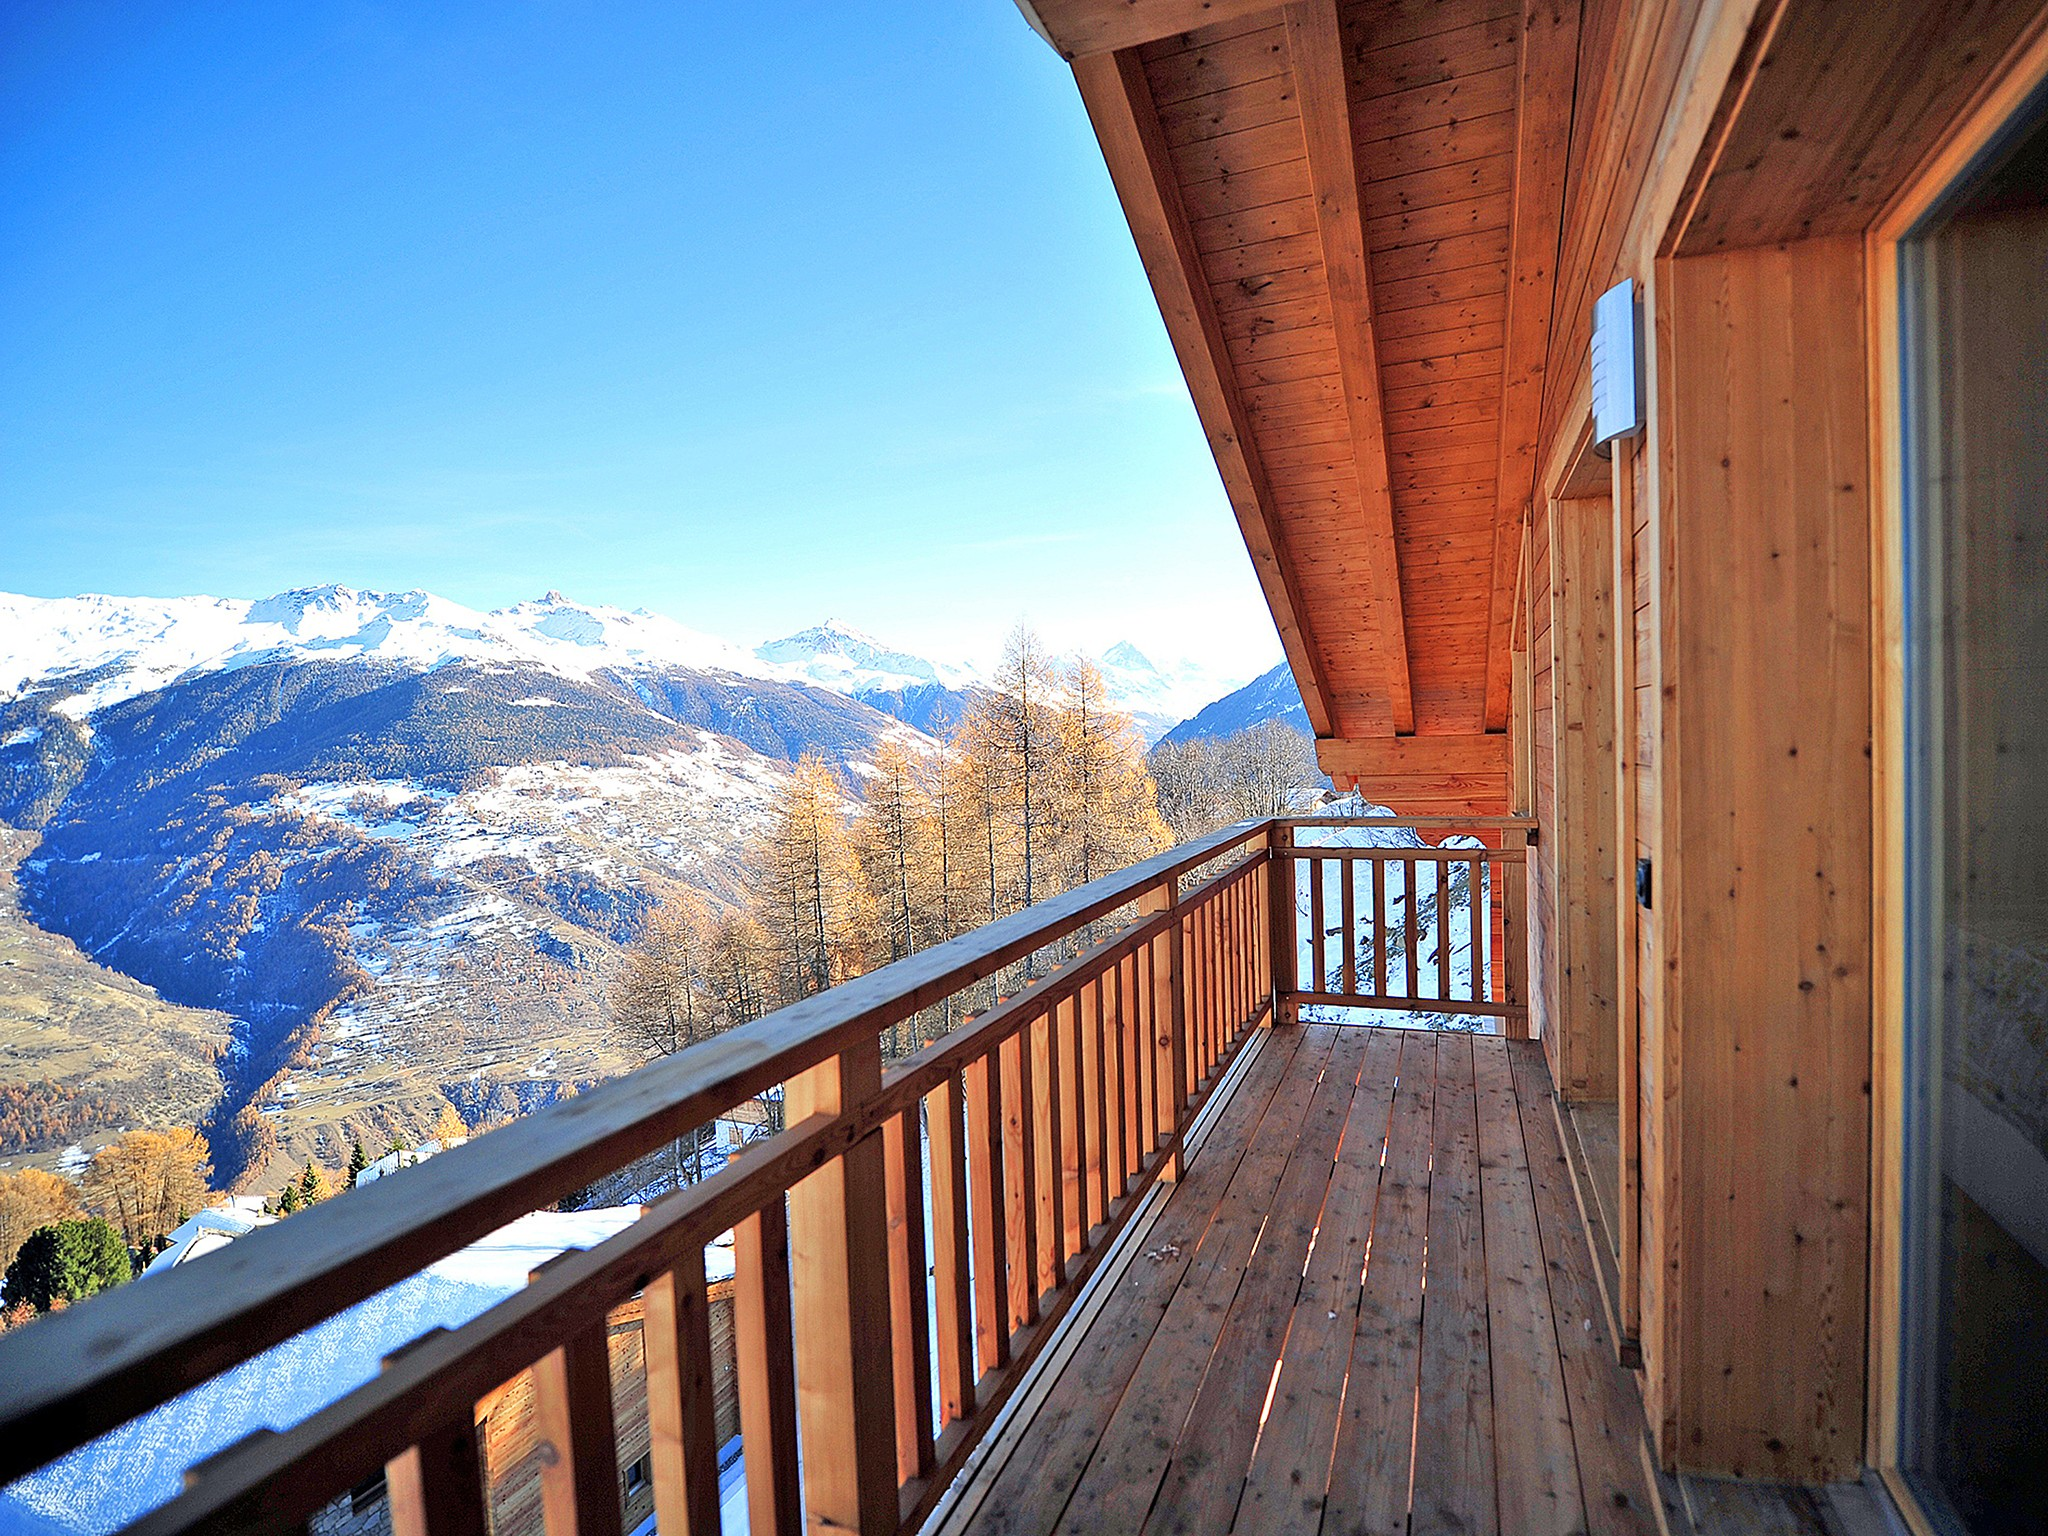 Chalet Brock - panoramic view